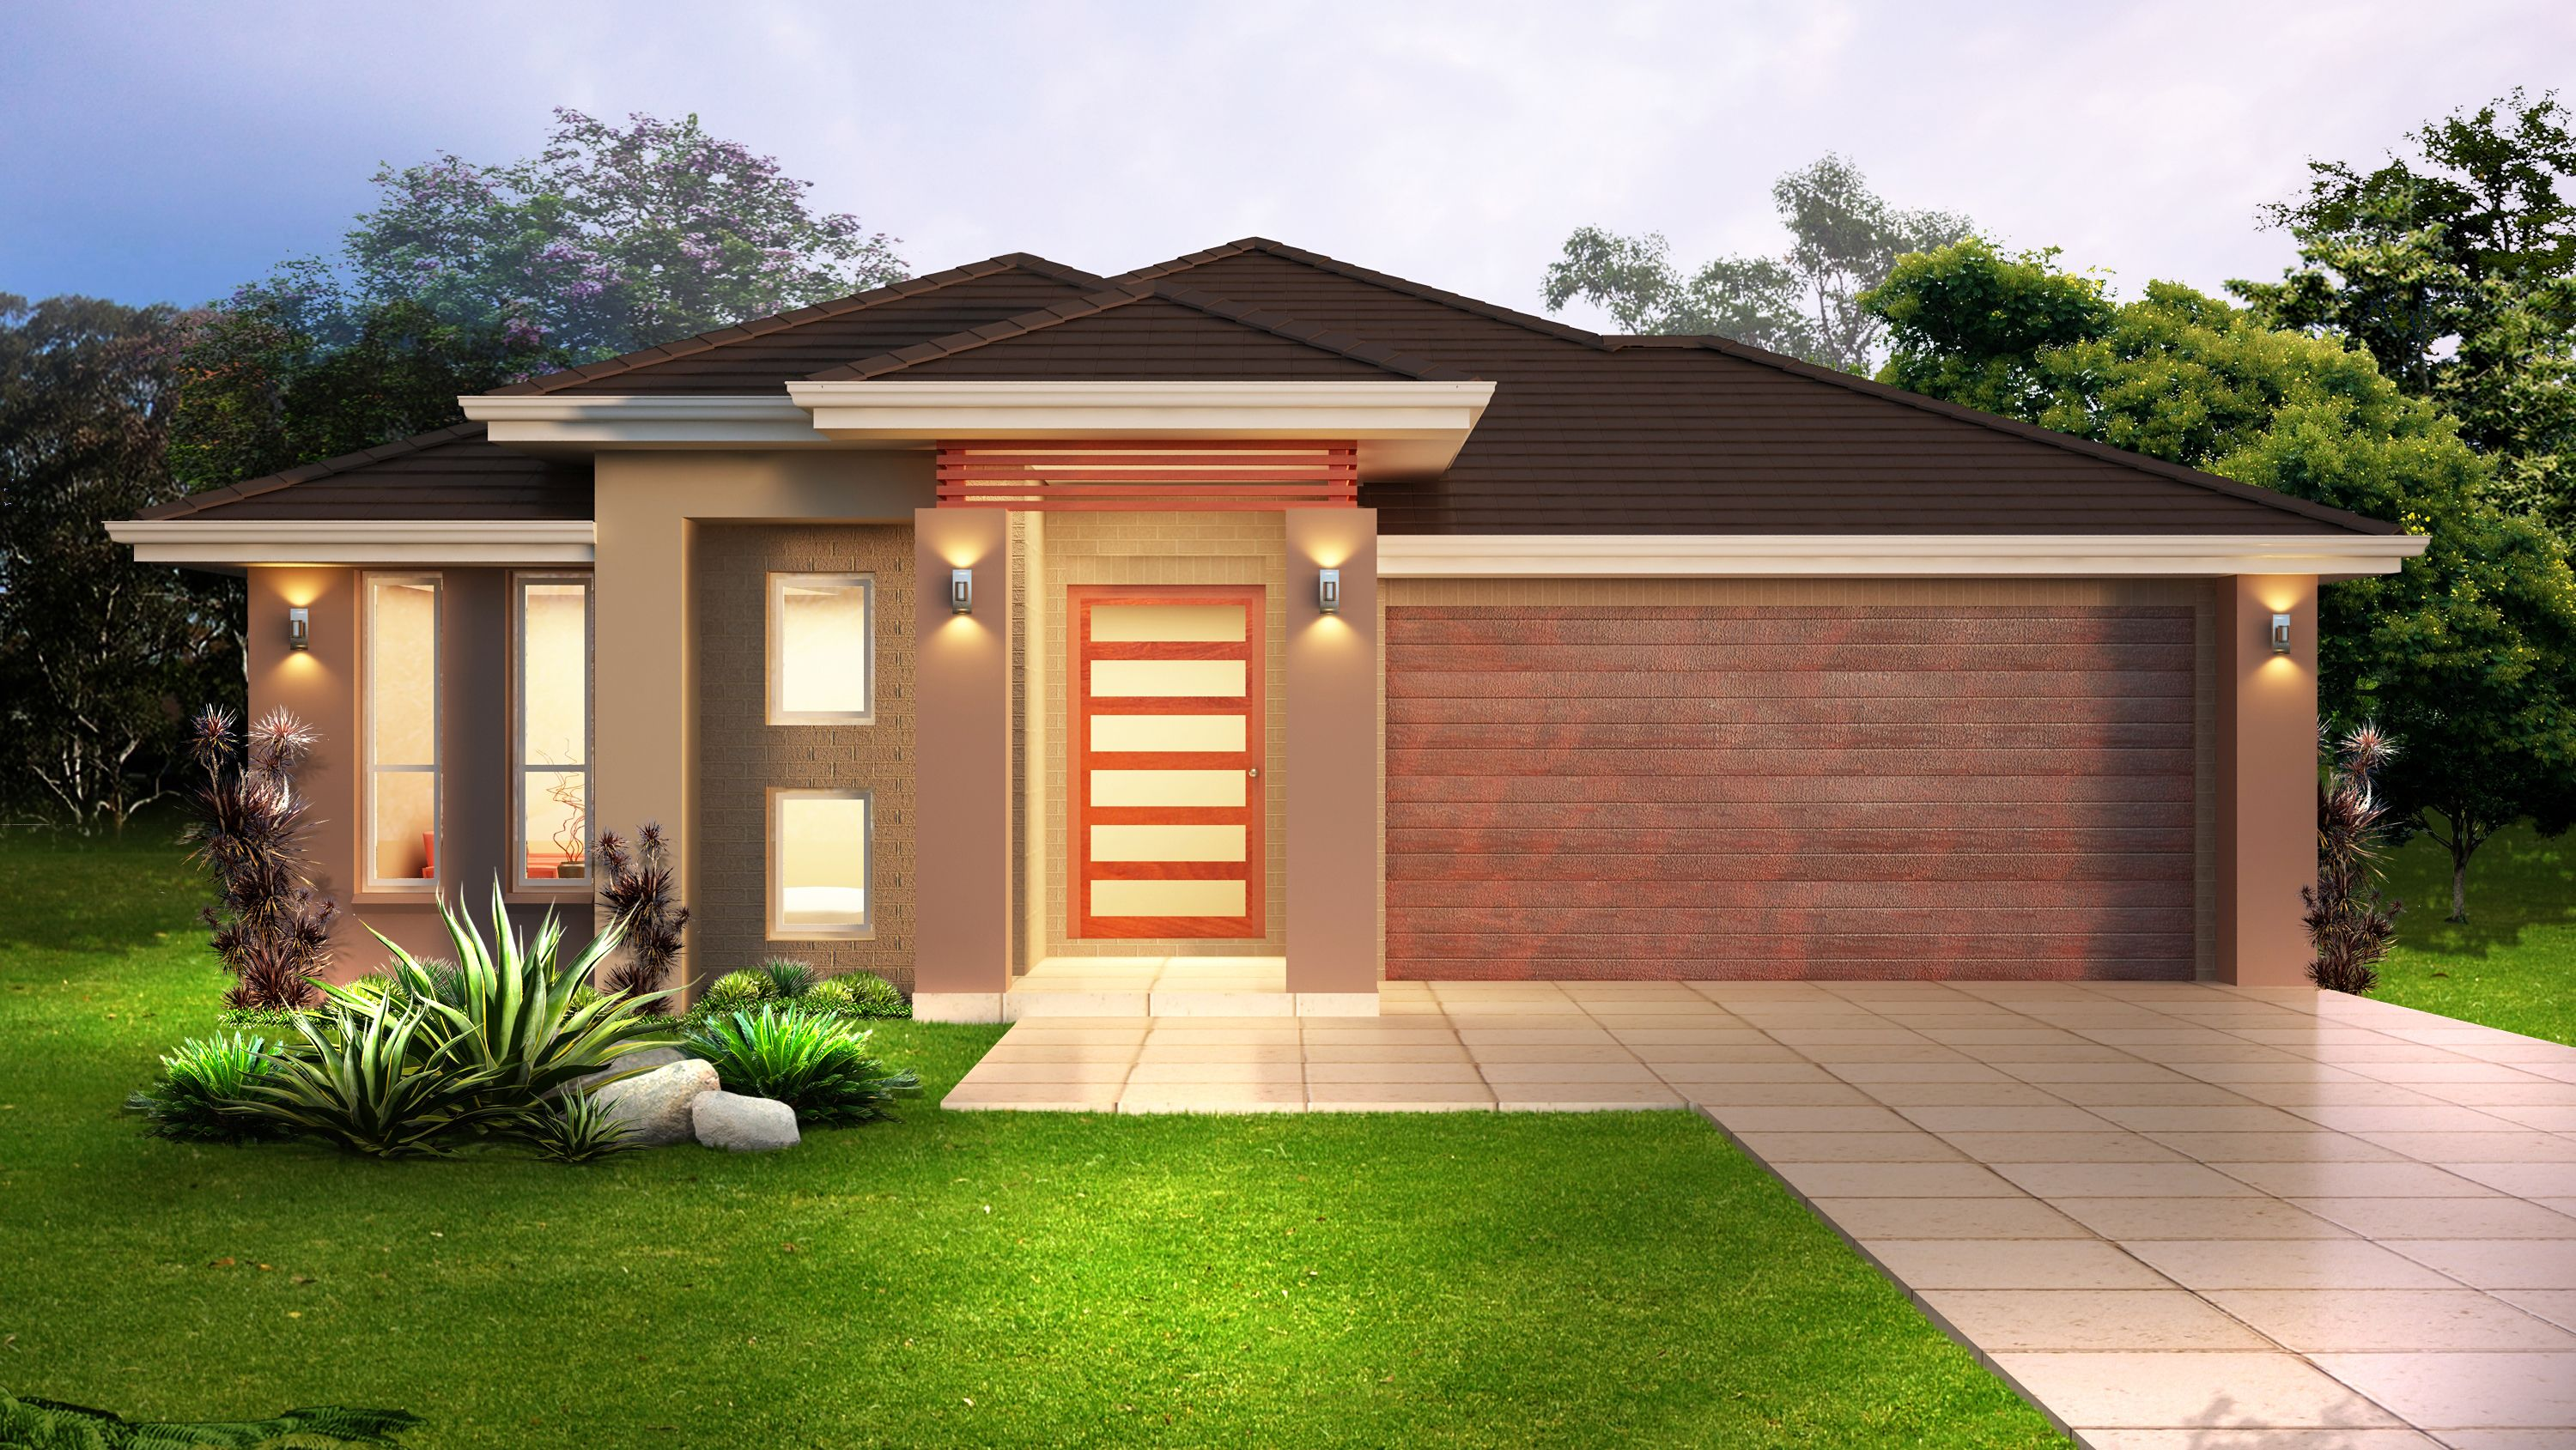 Single storey house design the lorenzo 220 sq m 11 75m x 23 15m jam packed with contemporary features this 3 bedroom house features 3 robes